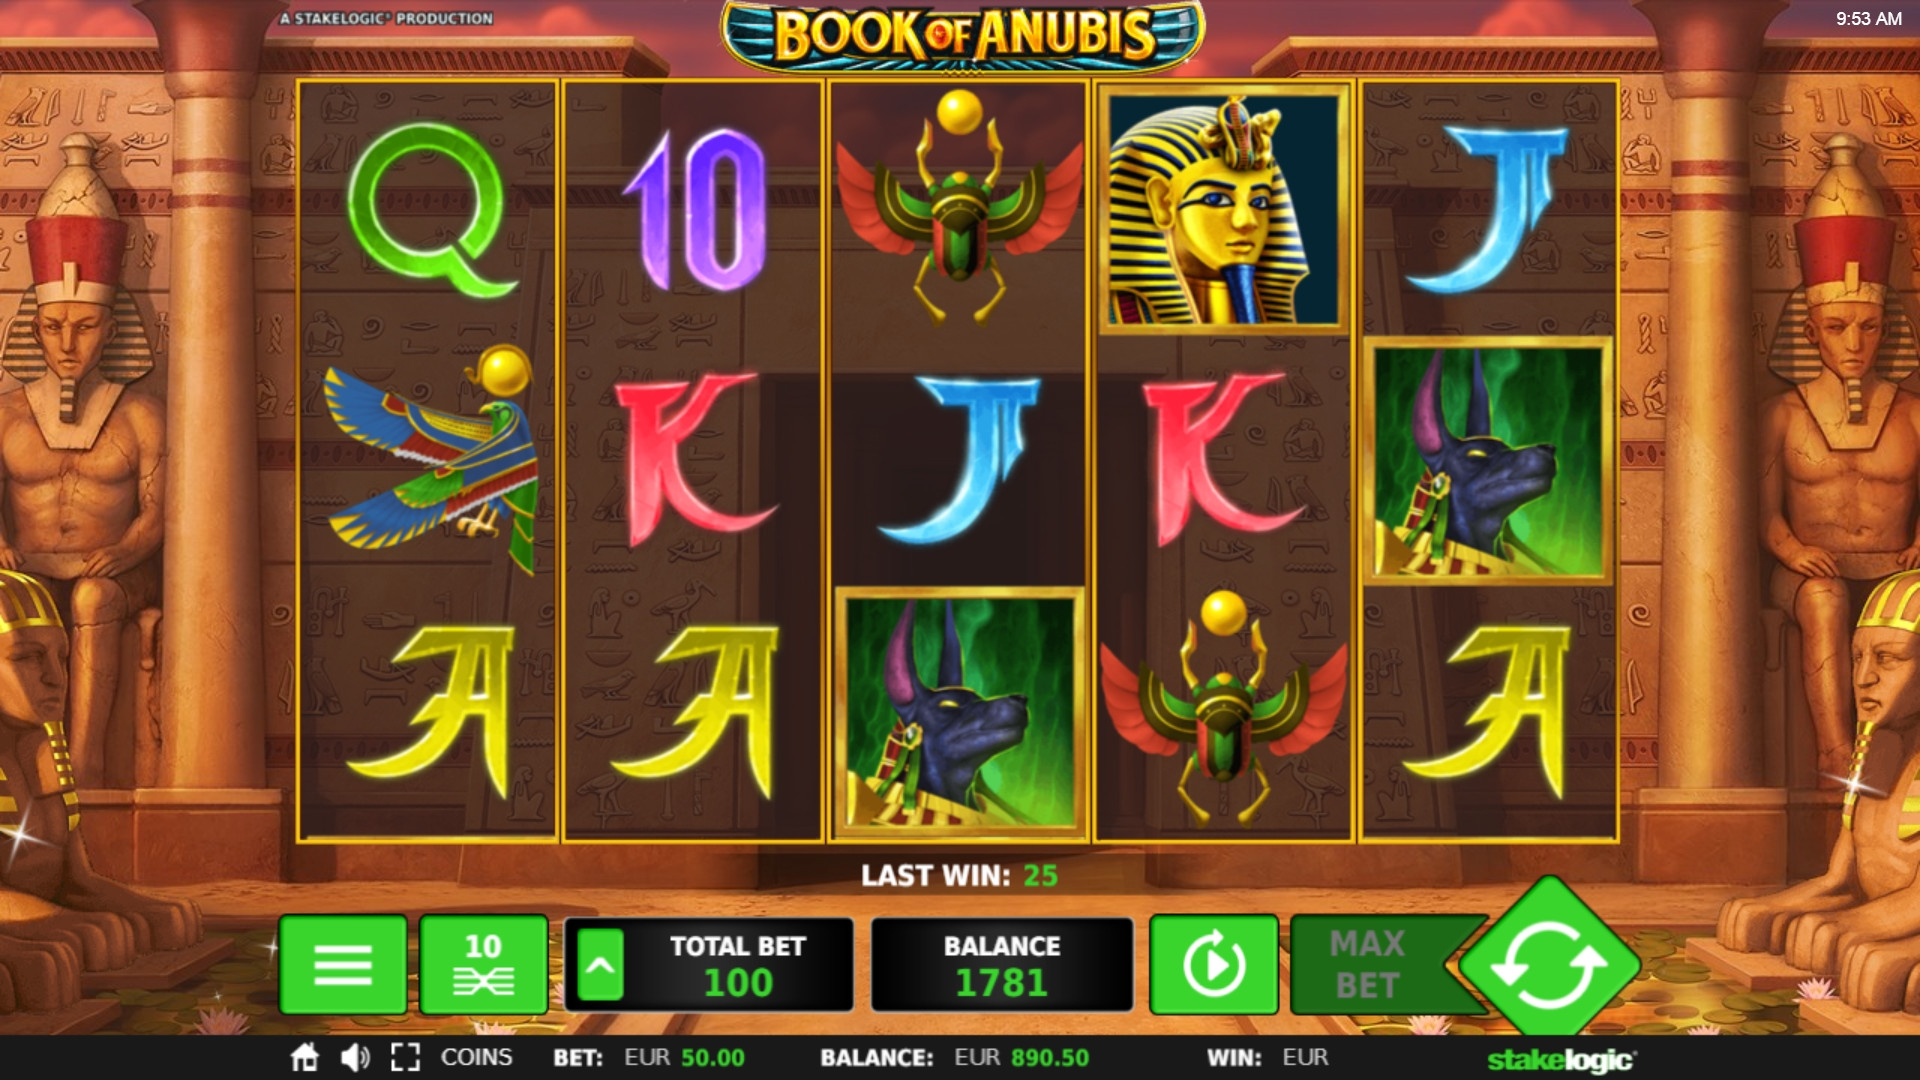 Anubis Slot Machine Review & Free Instant Play Casino Game